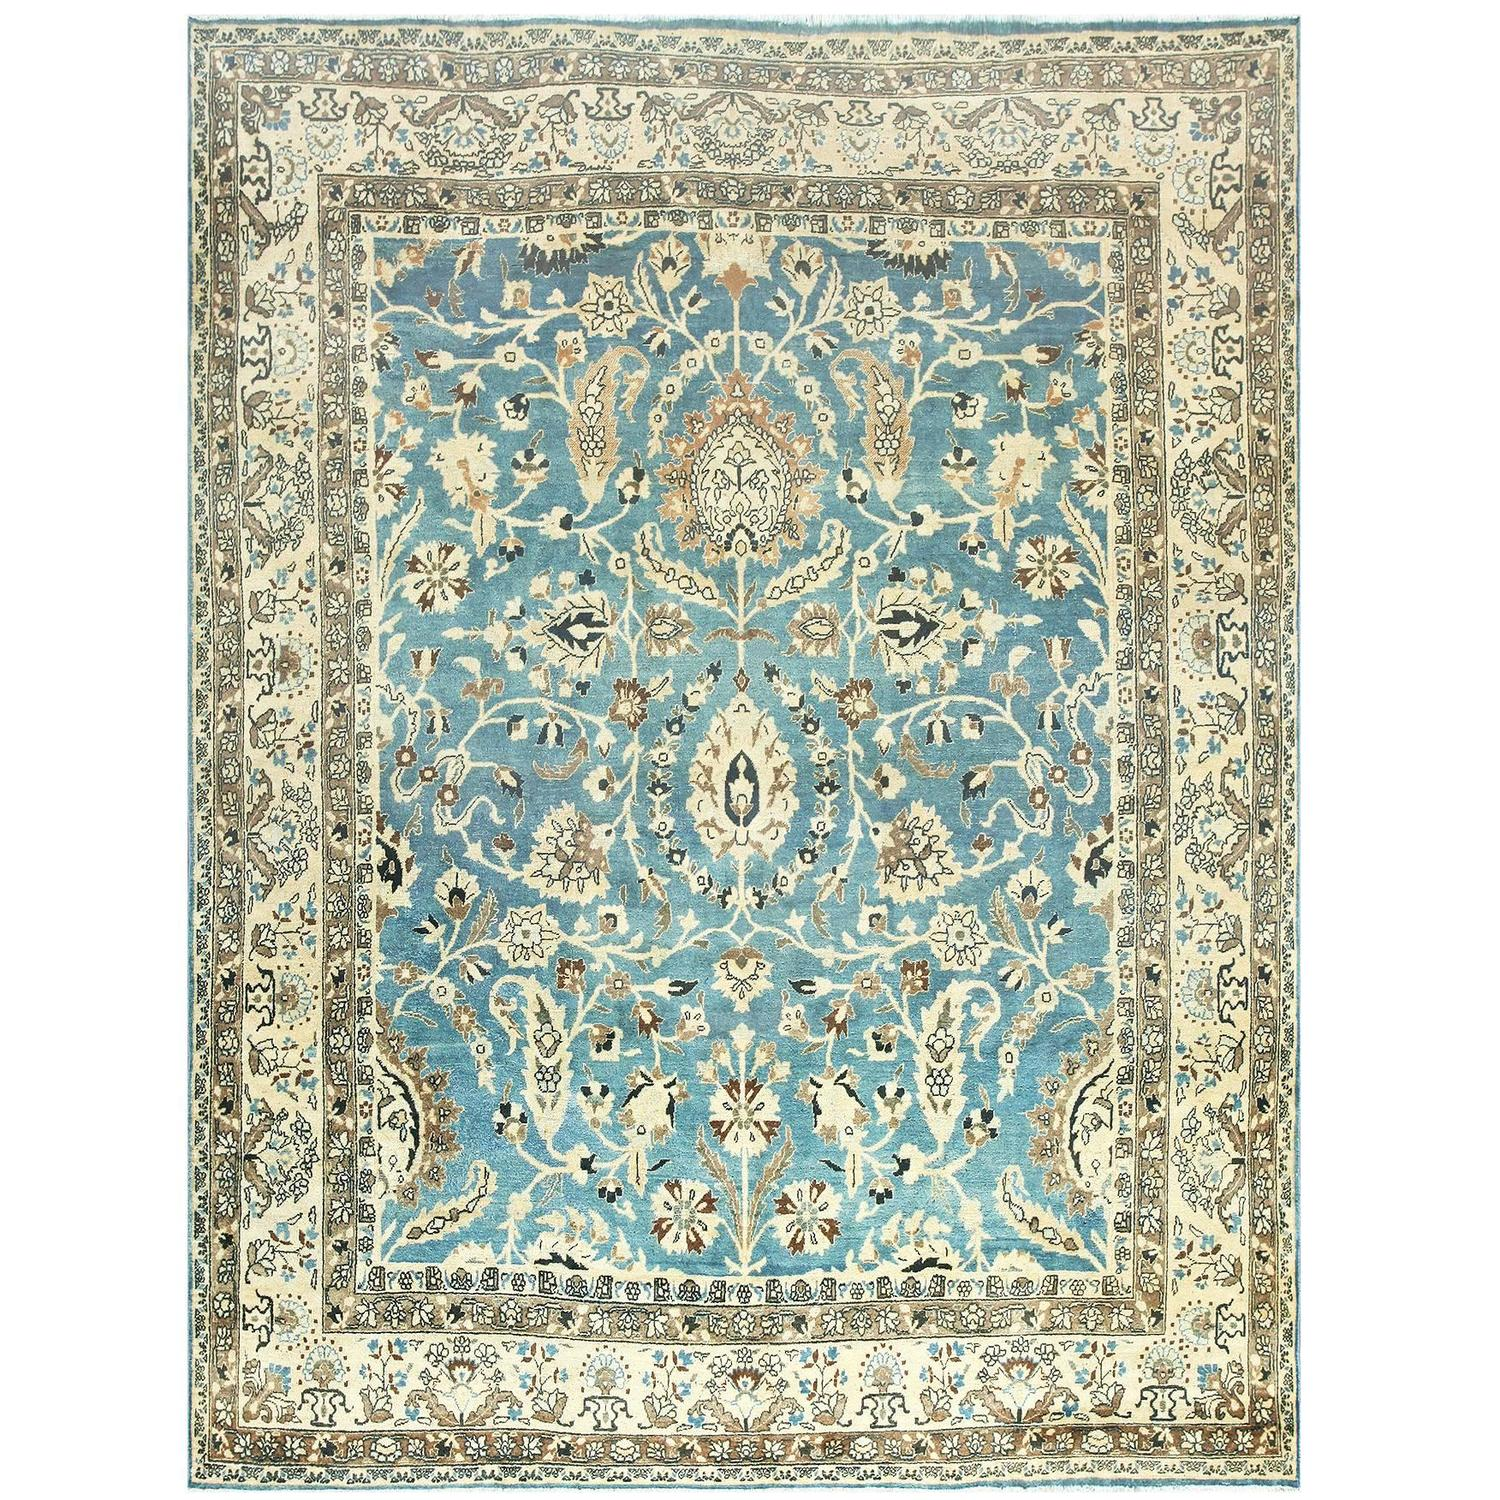 Antique Persian Khorassan Rug For Sale at 1stdibs